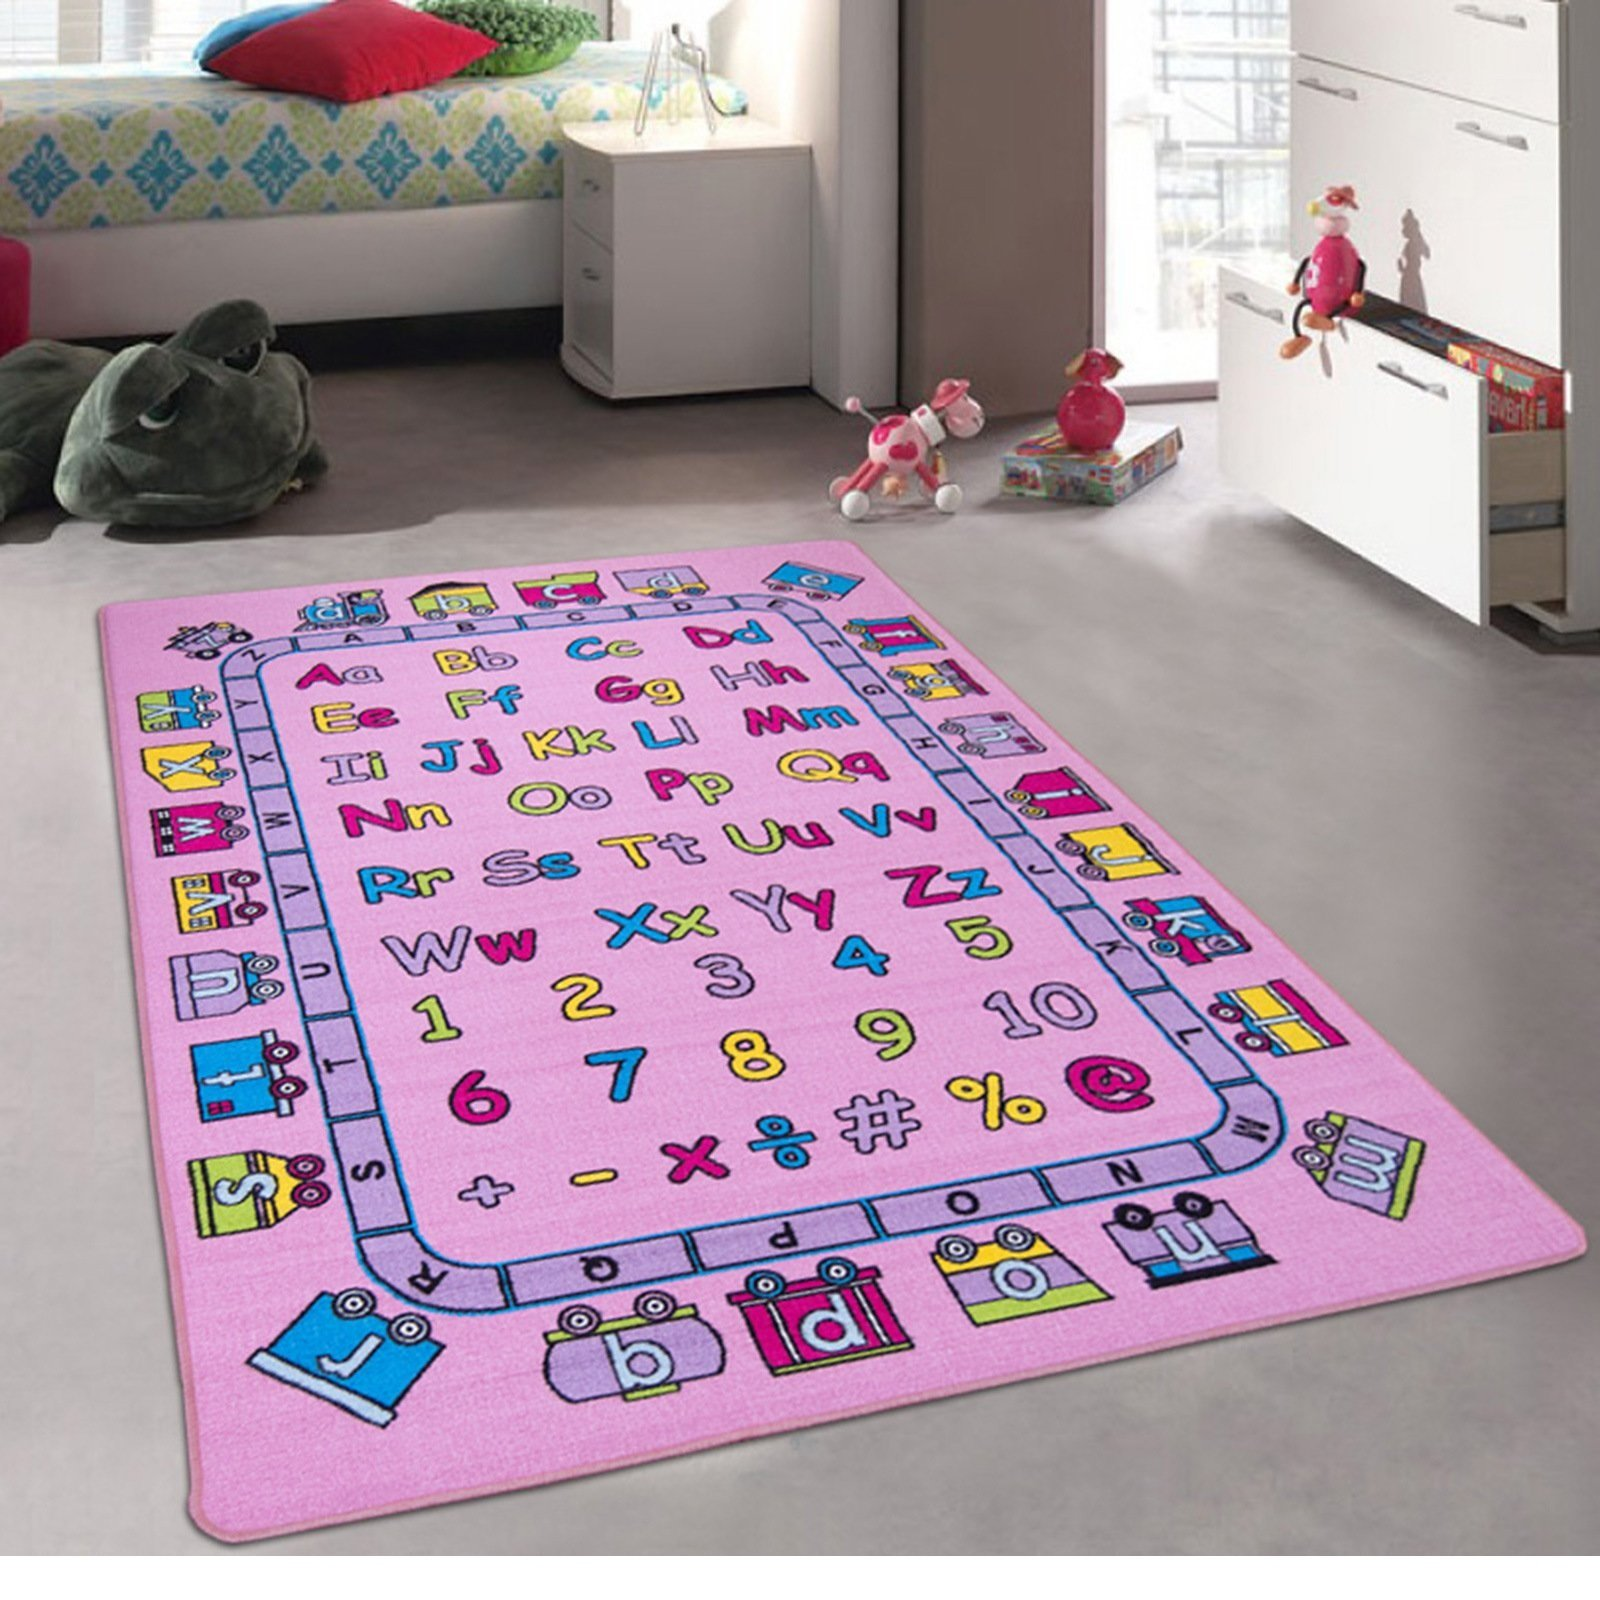 Kids / Baby Room / Daycare / Classroom / Playroom Girl's Area Rug. Alphabet. Letters. Numbers. Educational. Fun. Pink. Purple. Non-Slip Gel Back. Bright Colorful Vibrant Colors (8 Feet X 10 Feet)